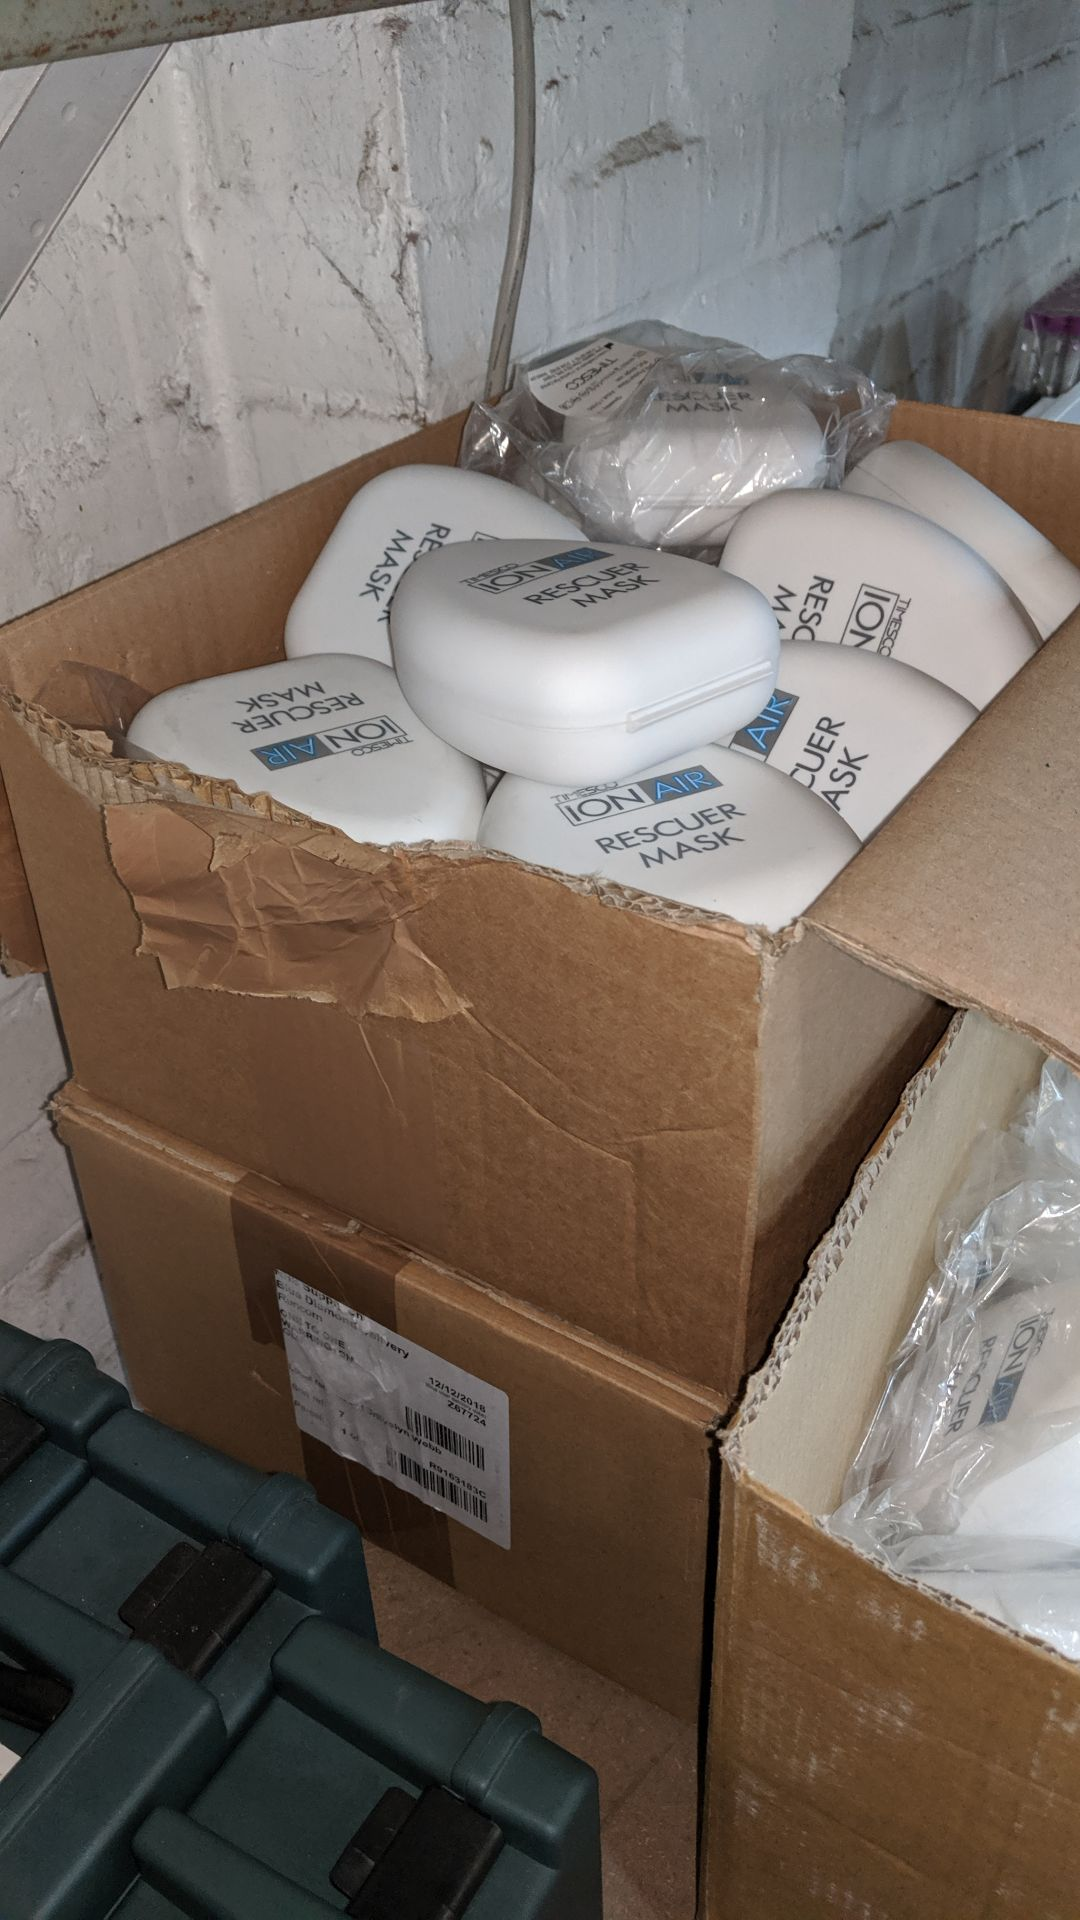 Lot 542 - 3 boxes of Timesco Ion Air Rescue Masks. This is one of a large number of lots used/owned by One